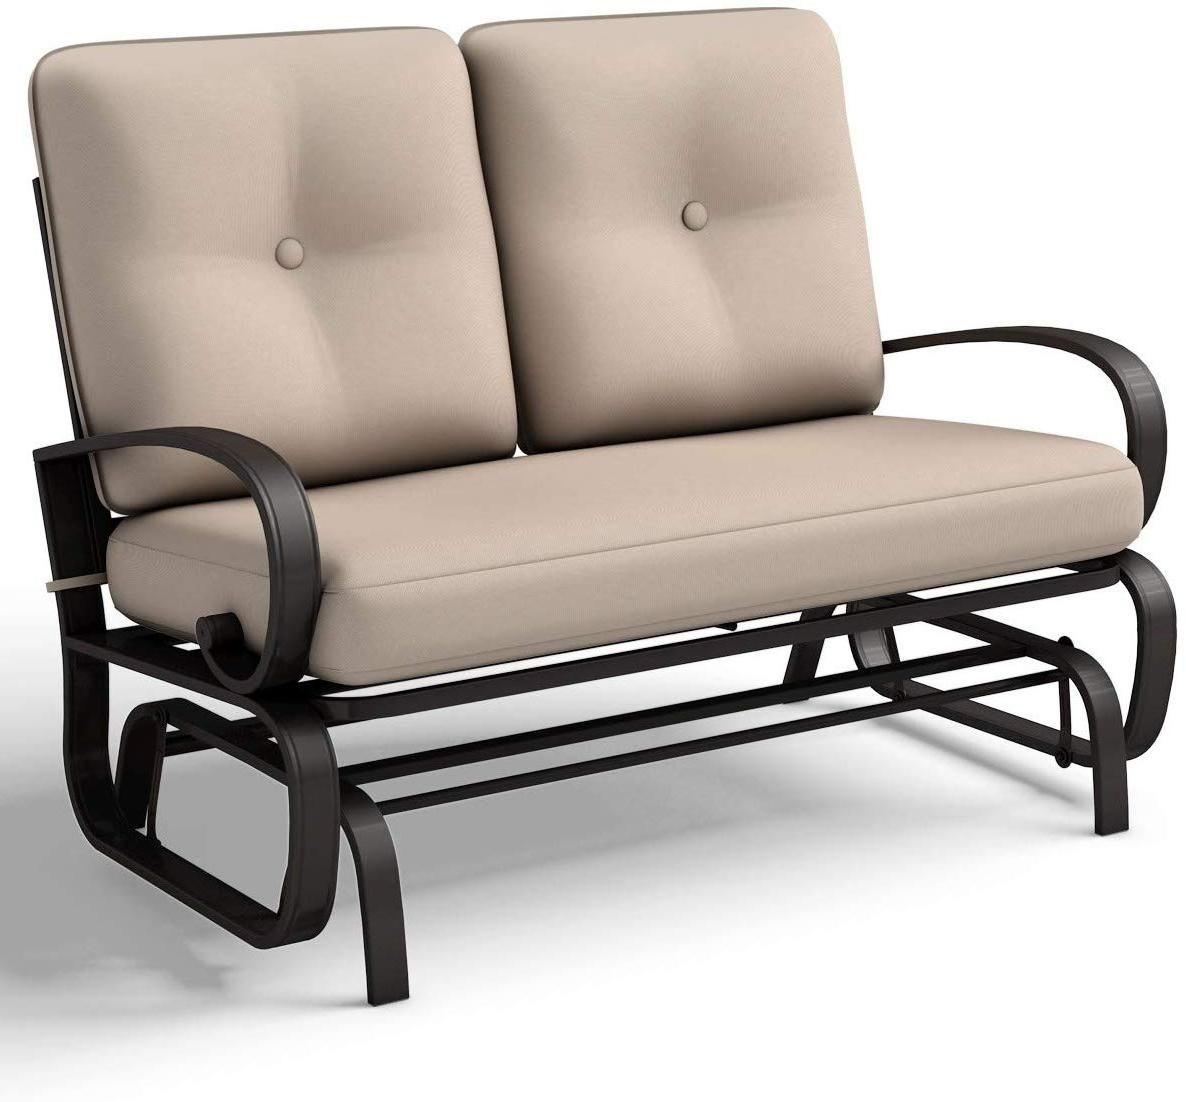 Well Known Rocking Glider Benches Inside Giantex Loveseat Outdoor Patio Rocking Glider Cushioned 2 Seats Steel Frame  Furniture (Beige) (Gallery 2 of 30)